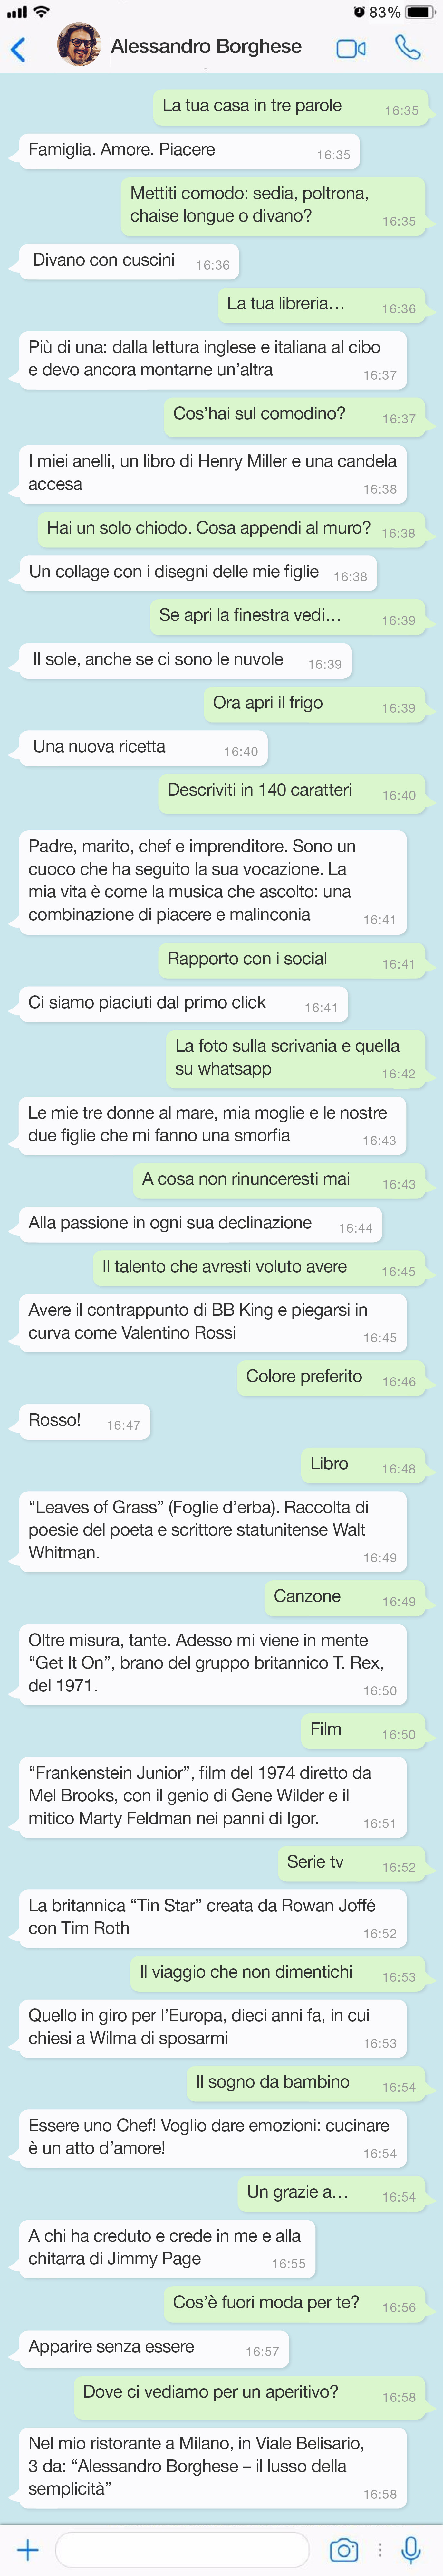 whatsapp-borghese2